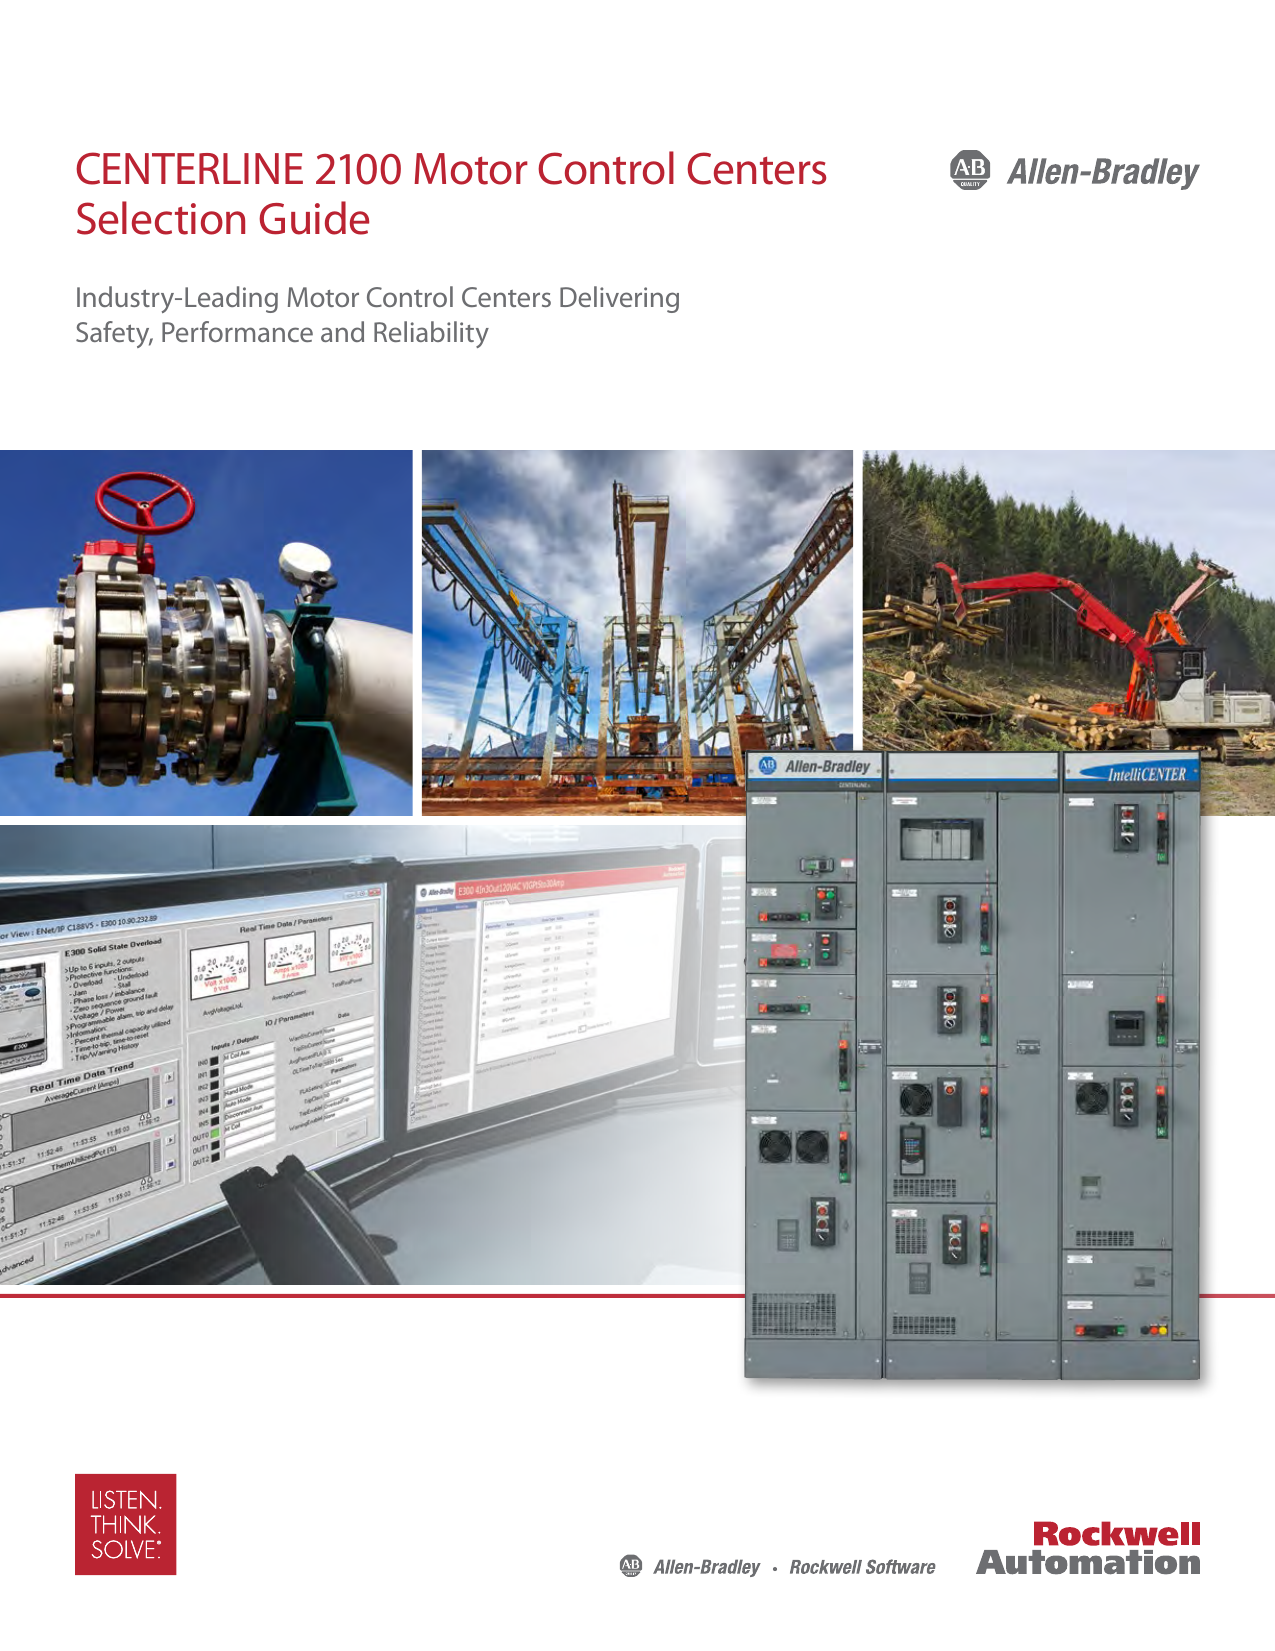 CENTERLINE 2100 Motor Control Centers Selection Guide